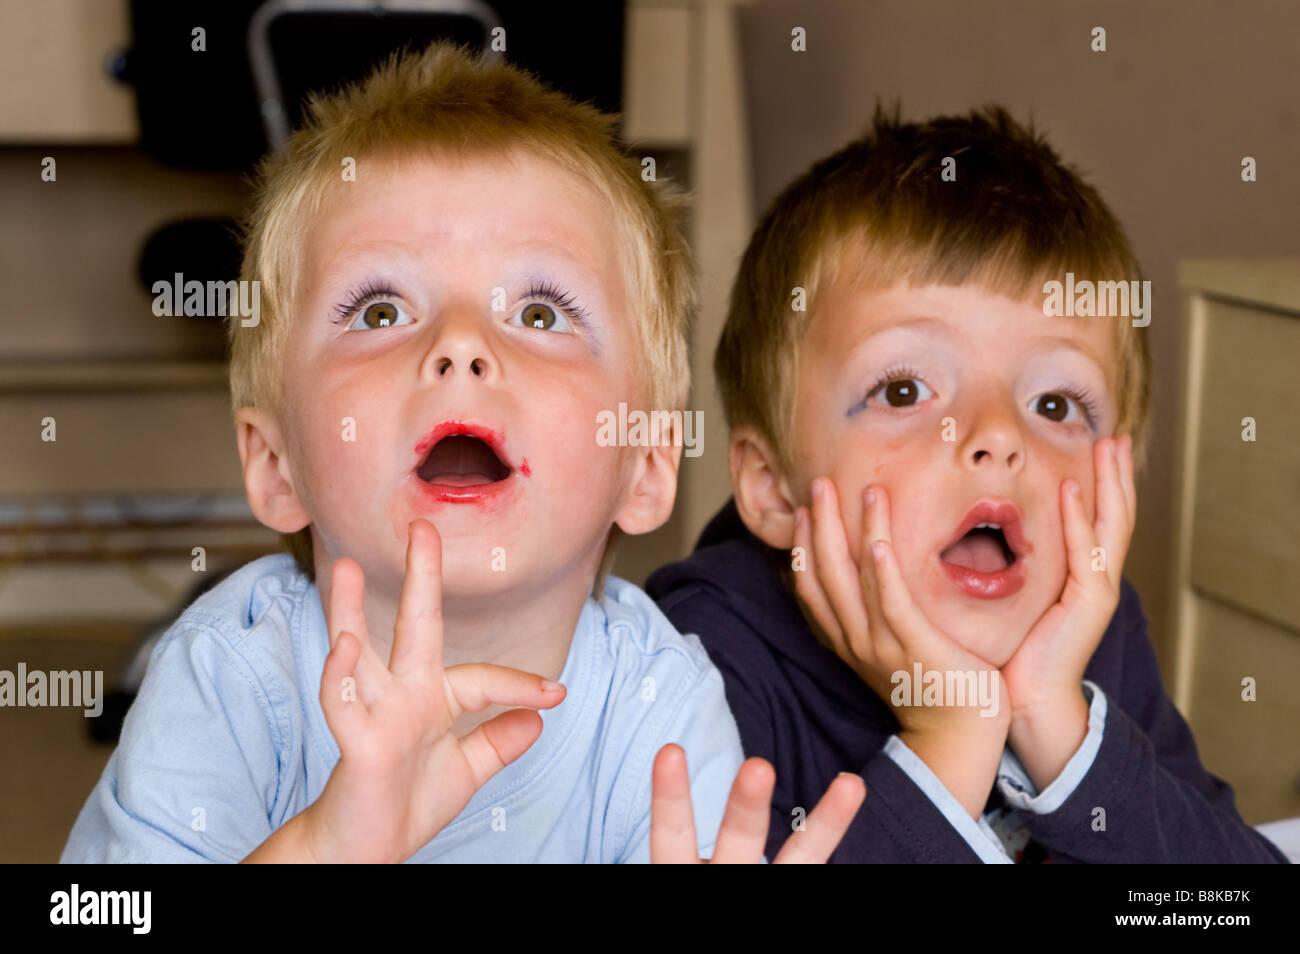 Two Little Boys Wearing Their Mothers Make Up With Humourous Stock